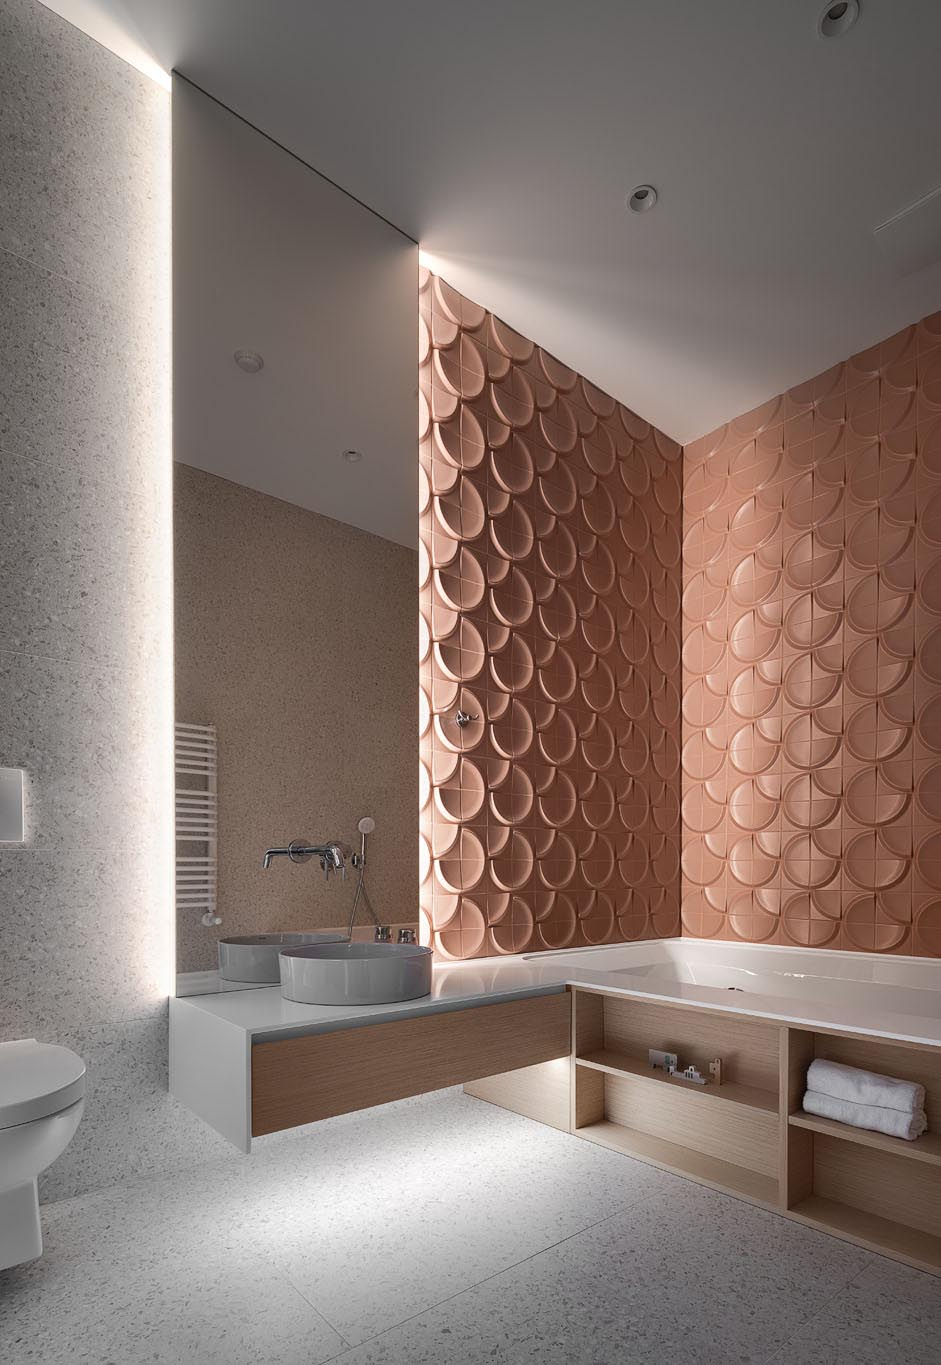 In this modern bathroom, 3-dimensional wall tiles create a unique textured look that's accentuated by the lighting coming from the backlit mirror.